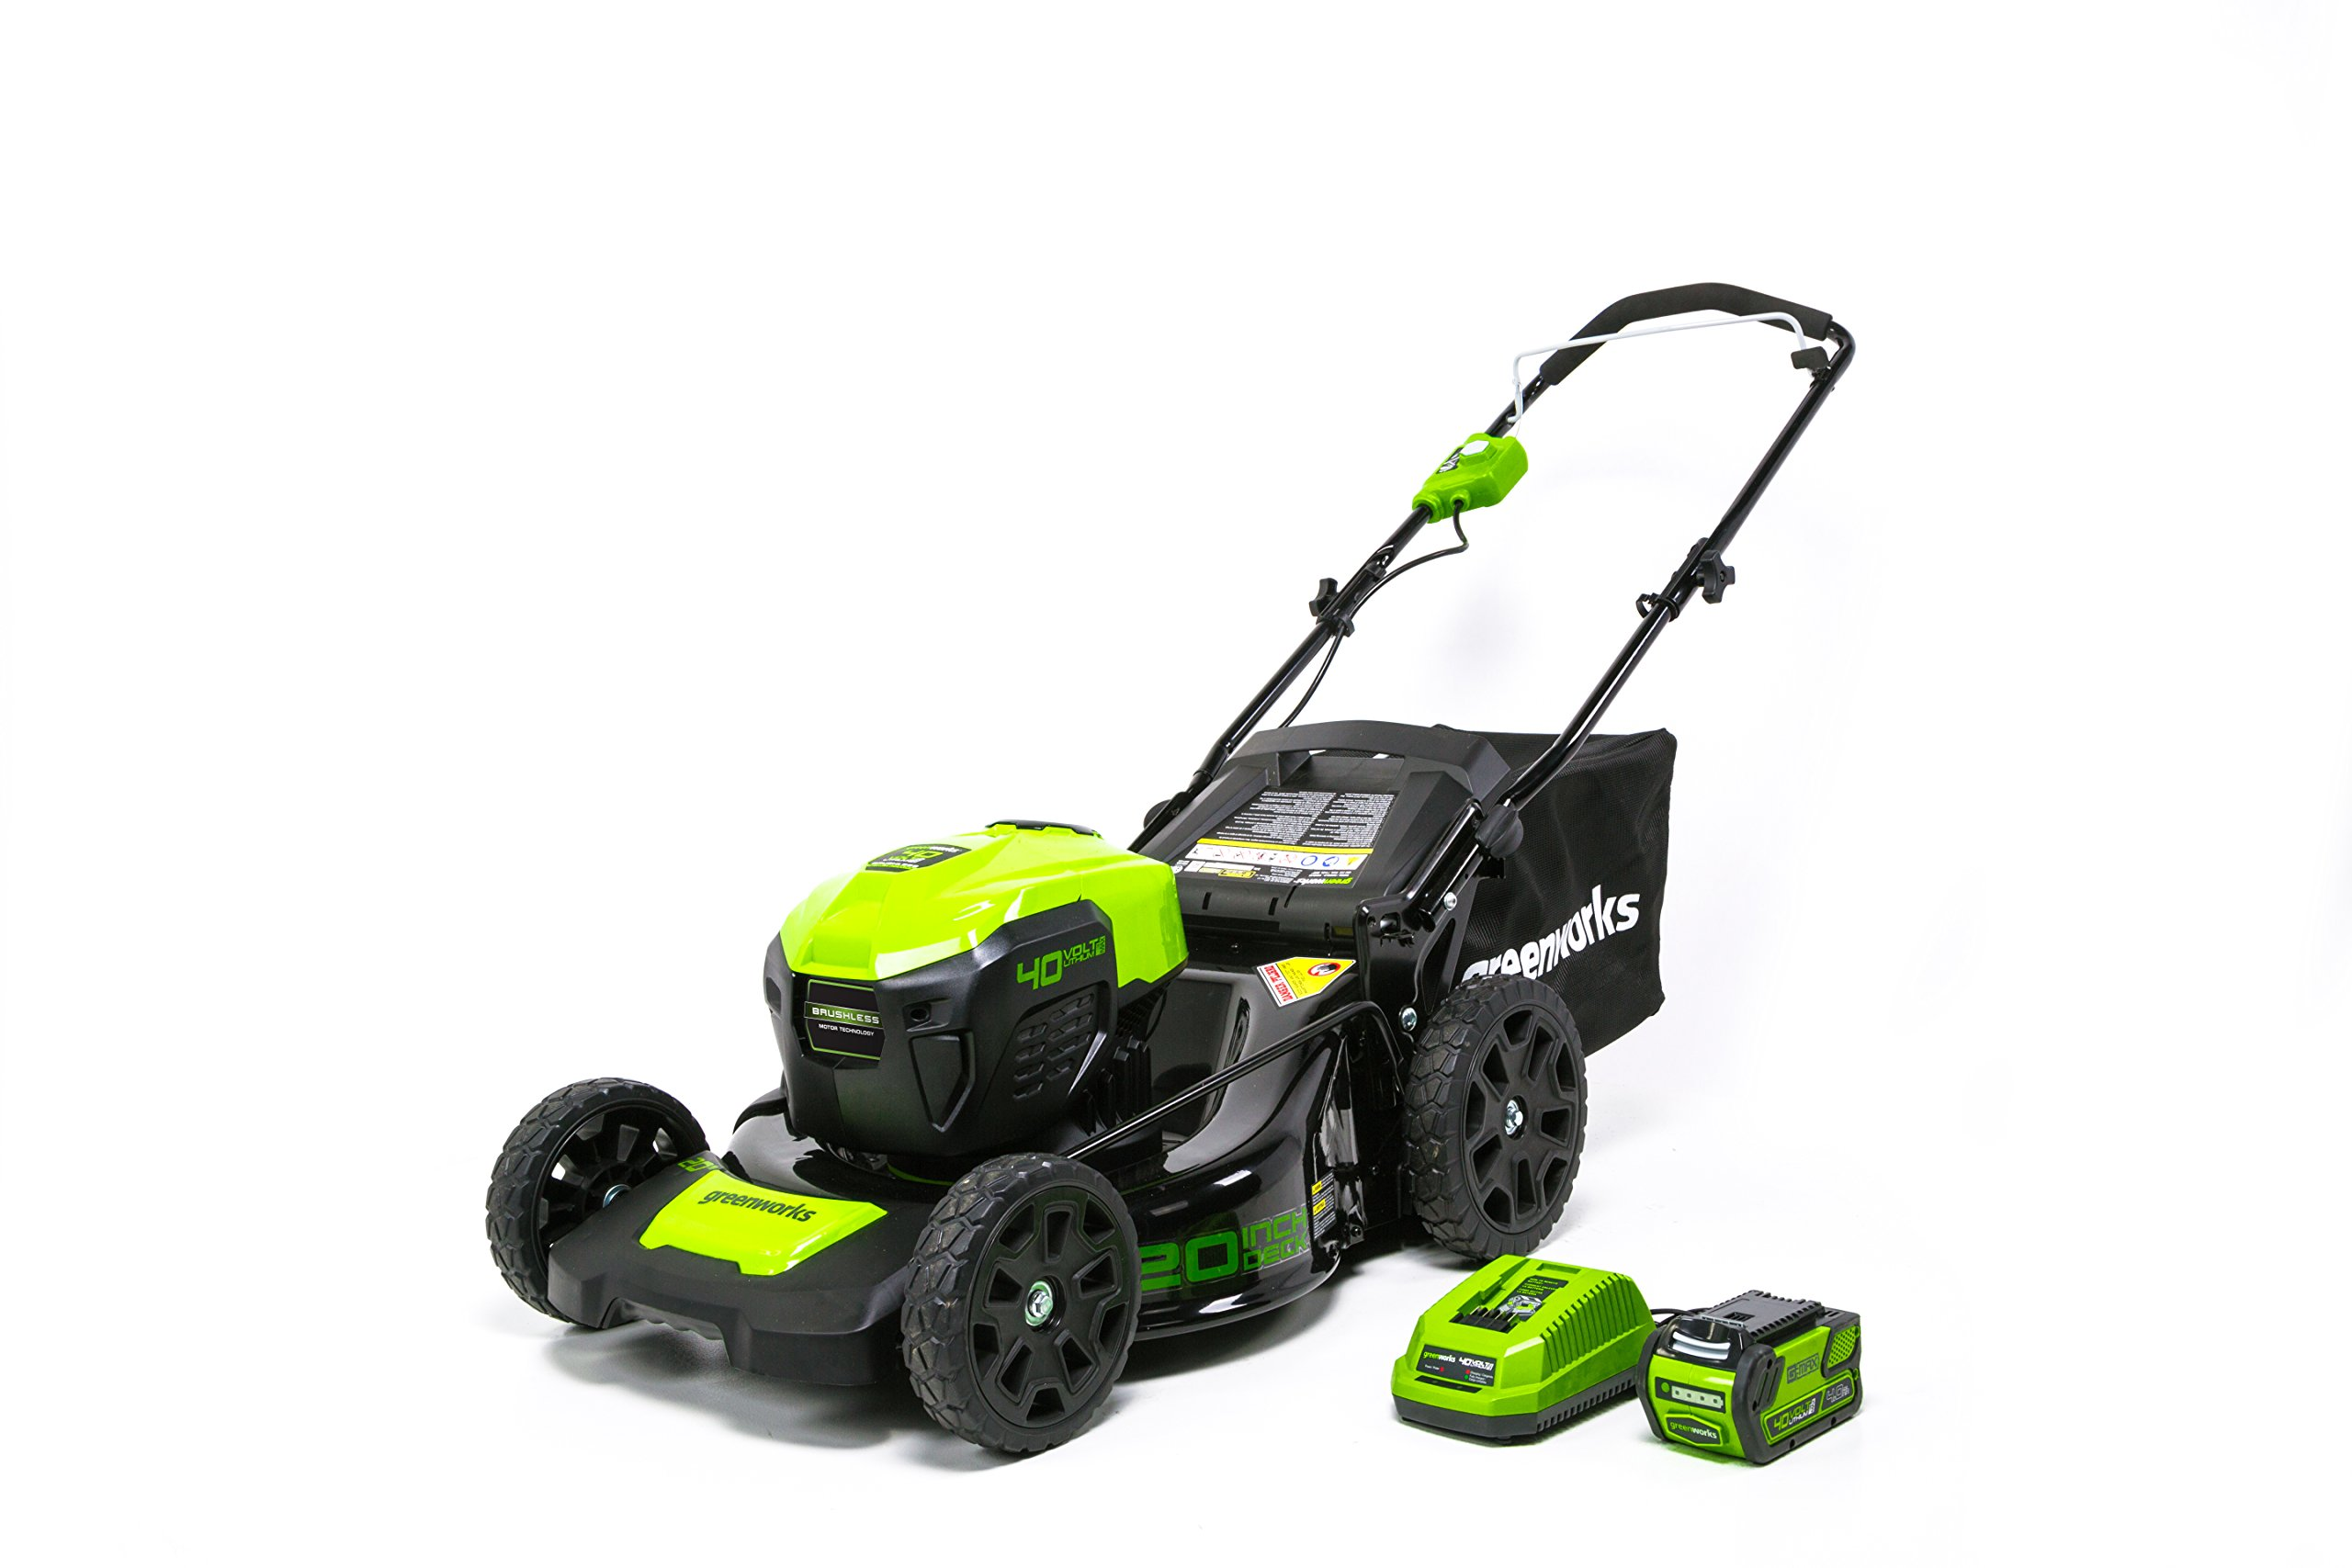 GreenWorks MO40L410 G-MAX 40V 20-Inch Cordless 3-in-1 Lawn Mower with Smart Cut Technology, (1) 4Ah Battery and Charger included by Greenworks